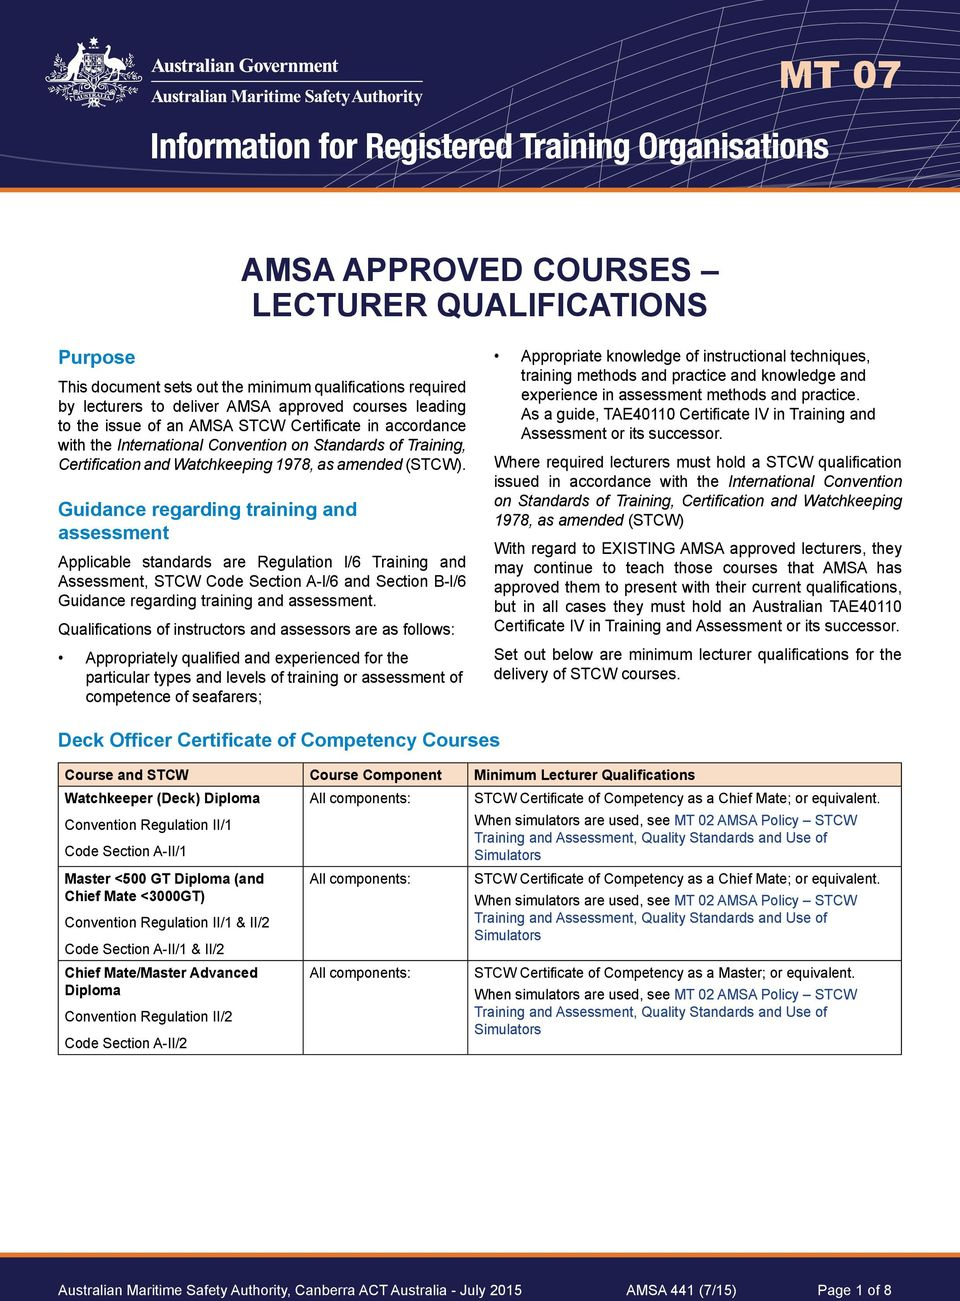 Guidance regarding training and assessment Applicable standards are Regulation l/6 Training and Assessment, STCW Code Section A-l/6 and Section B-l/6 Guidance regarding training and assessment.